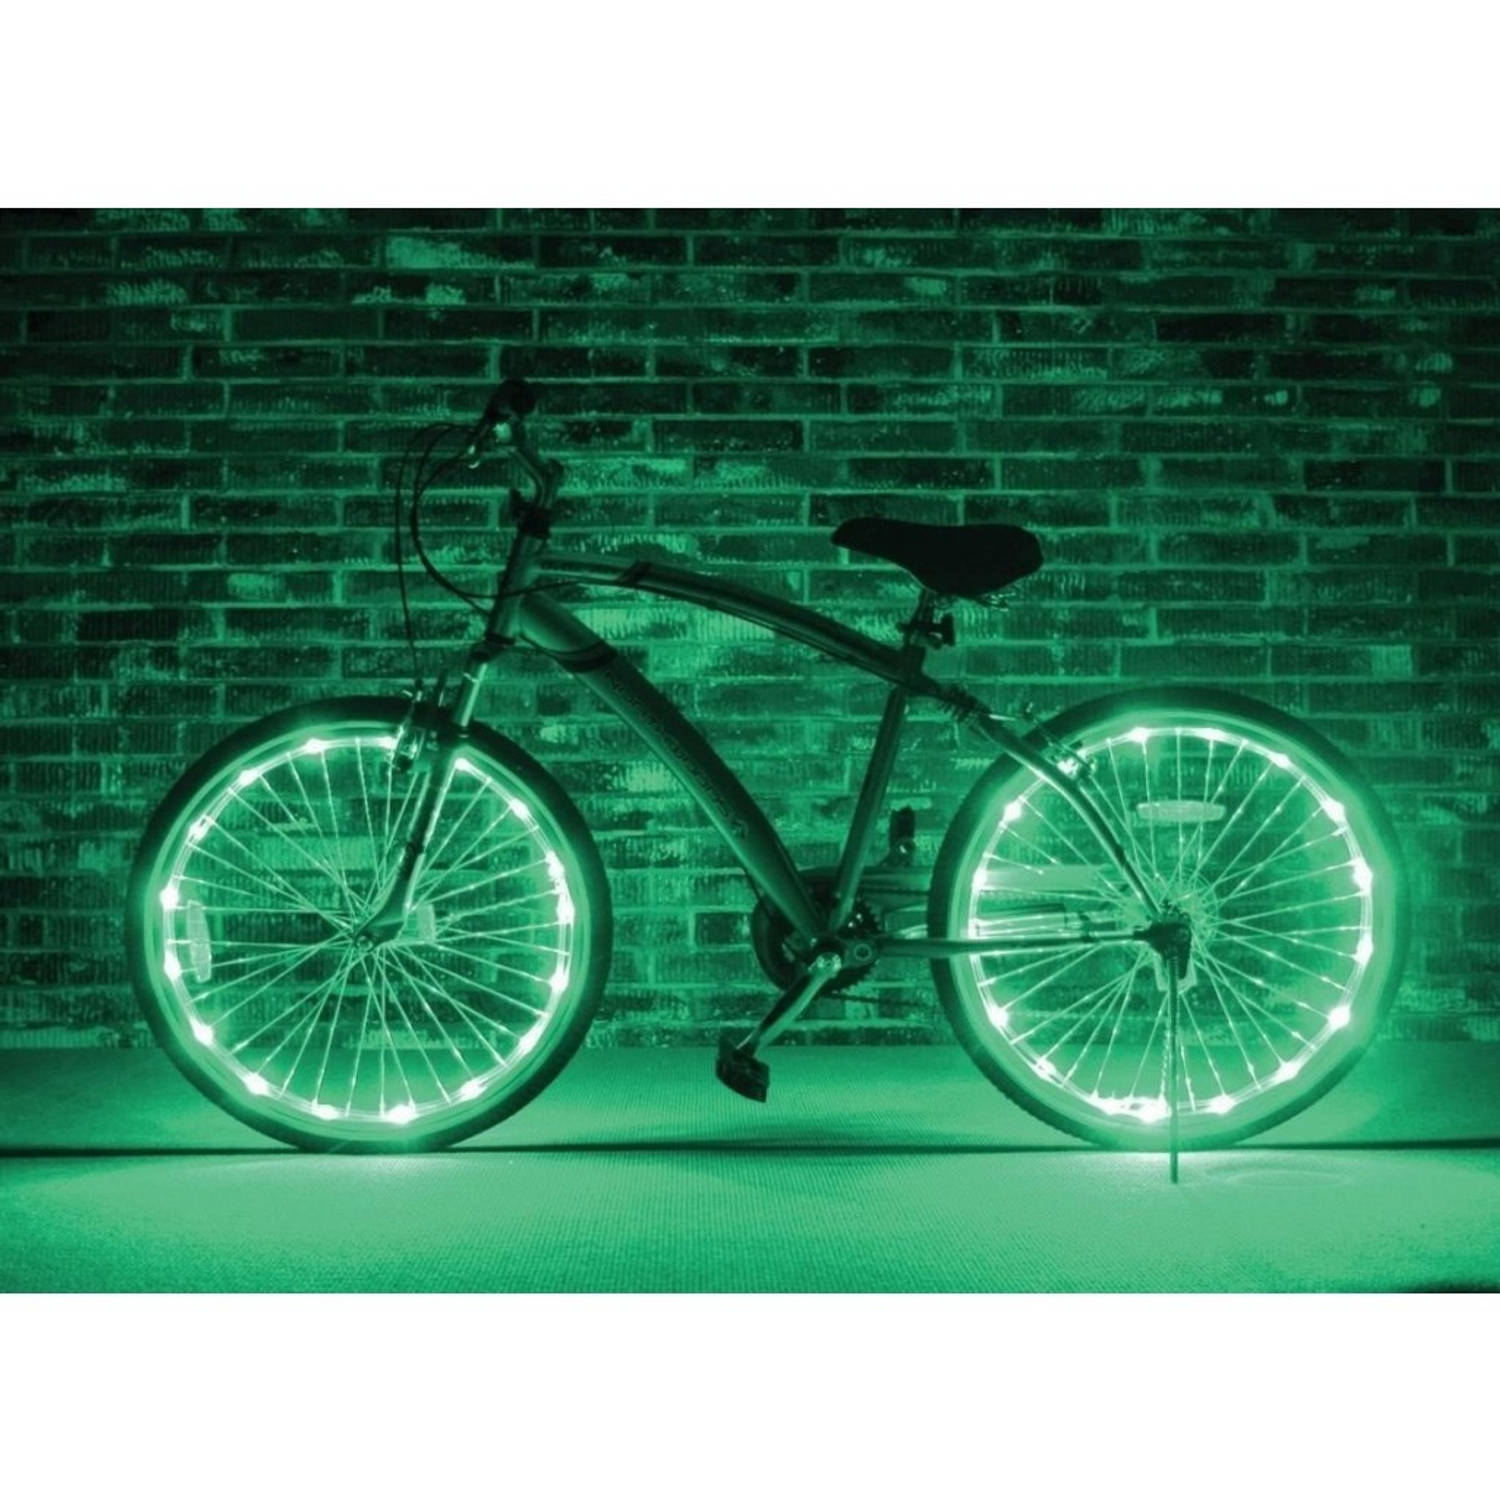 johntoy wielverlichting wheels of light groen 2 stuks